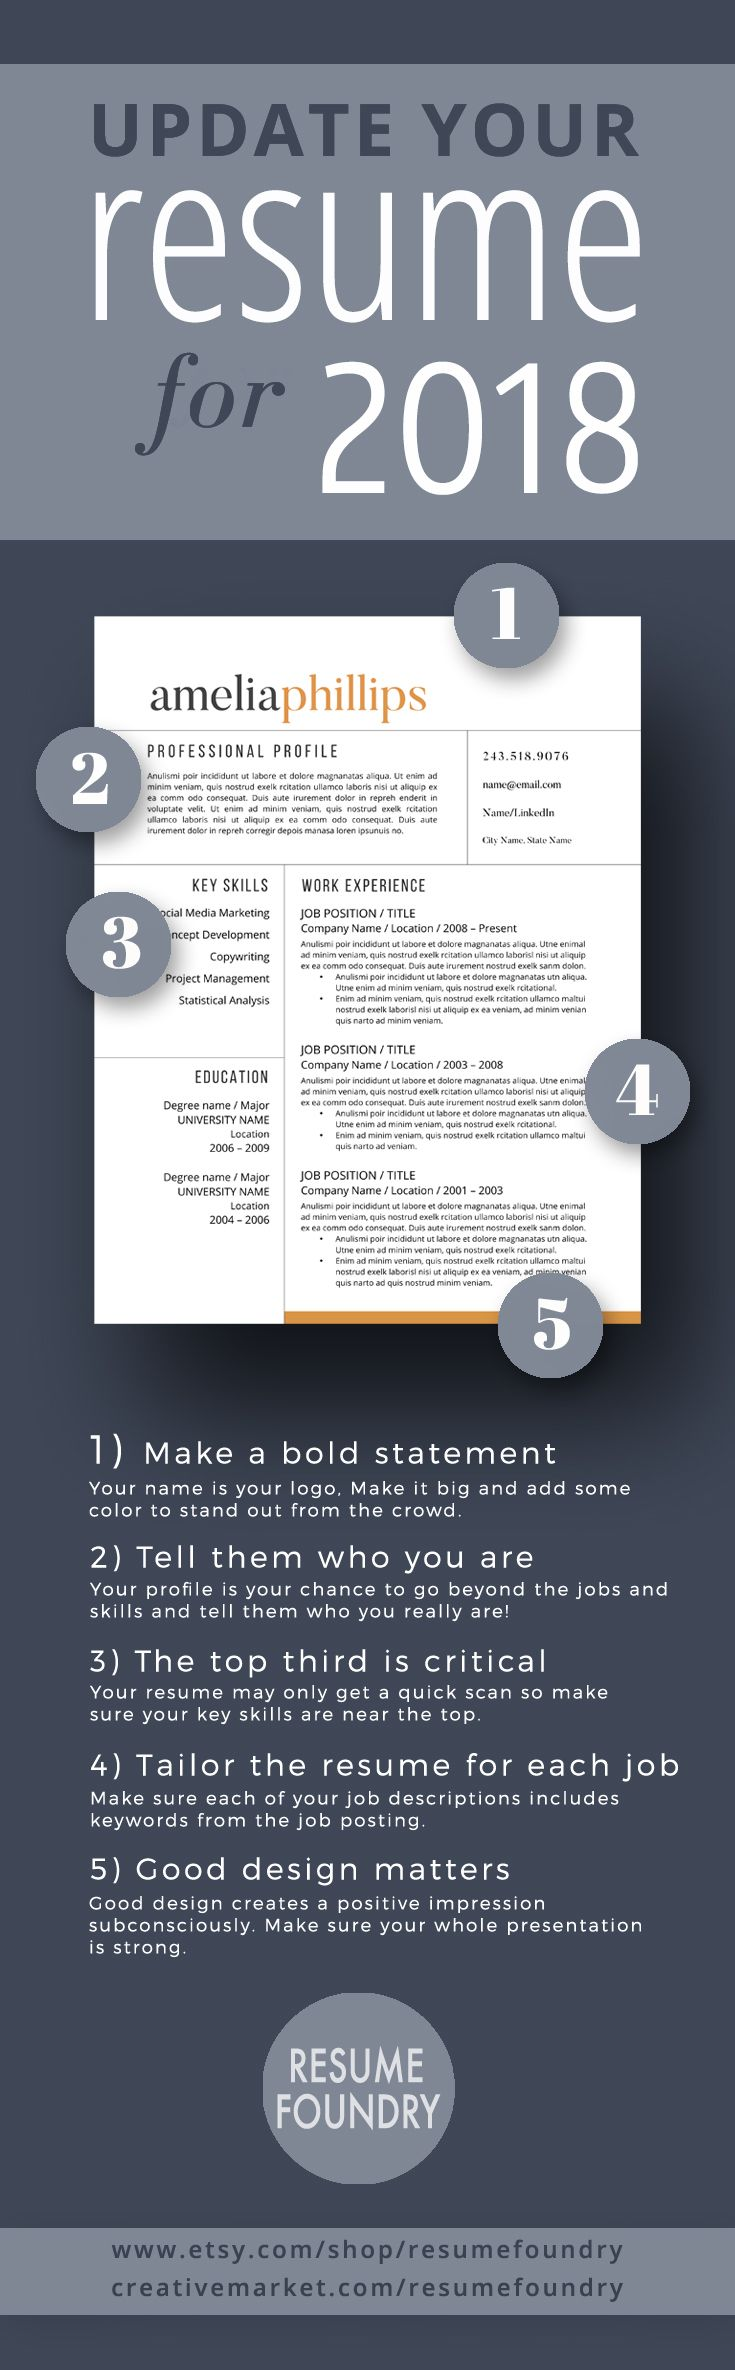 Best Resume Images On   Resume Templates Cv Resume